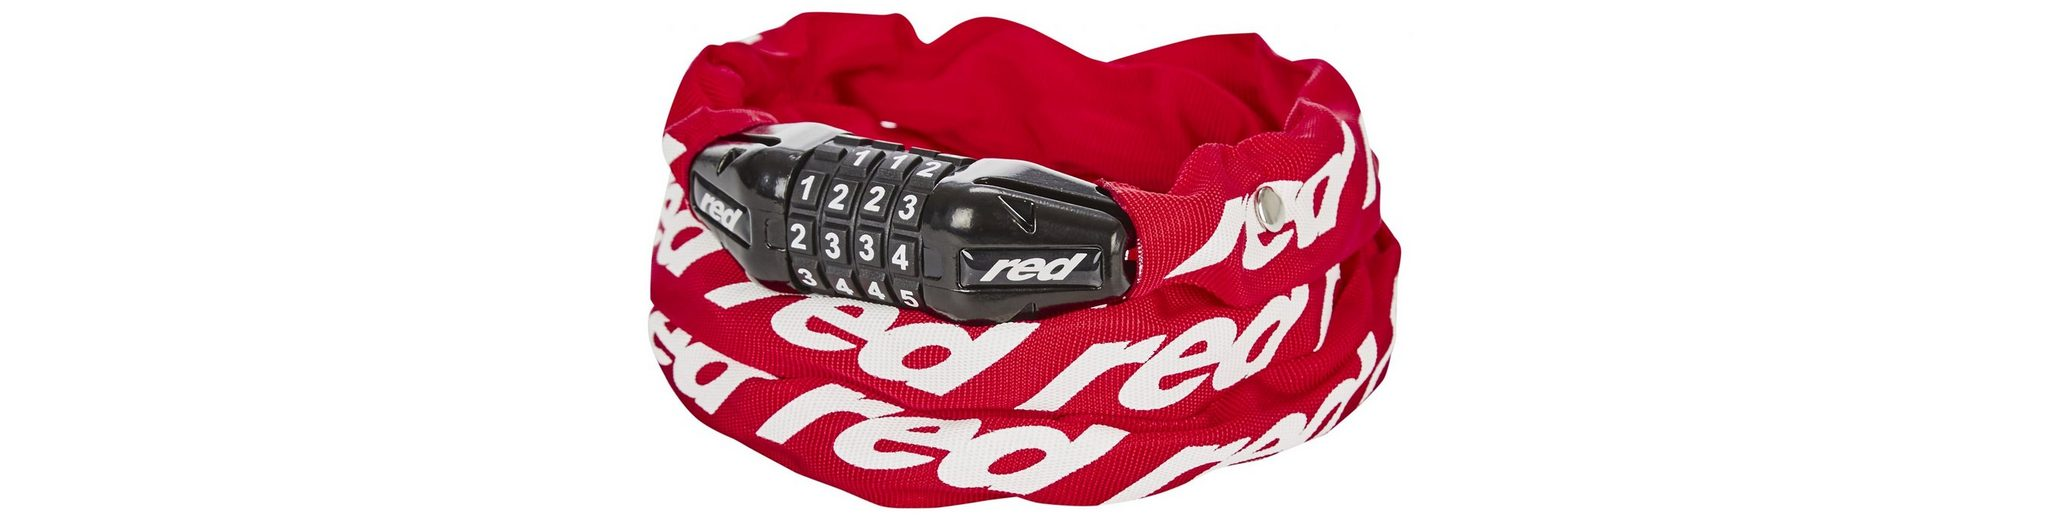 Red Cycling Products Fahrradschloss »Secure Chain Kettenschloss resettable«